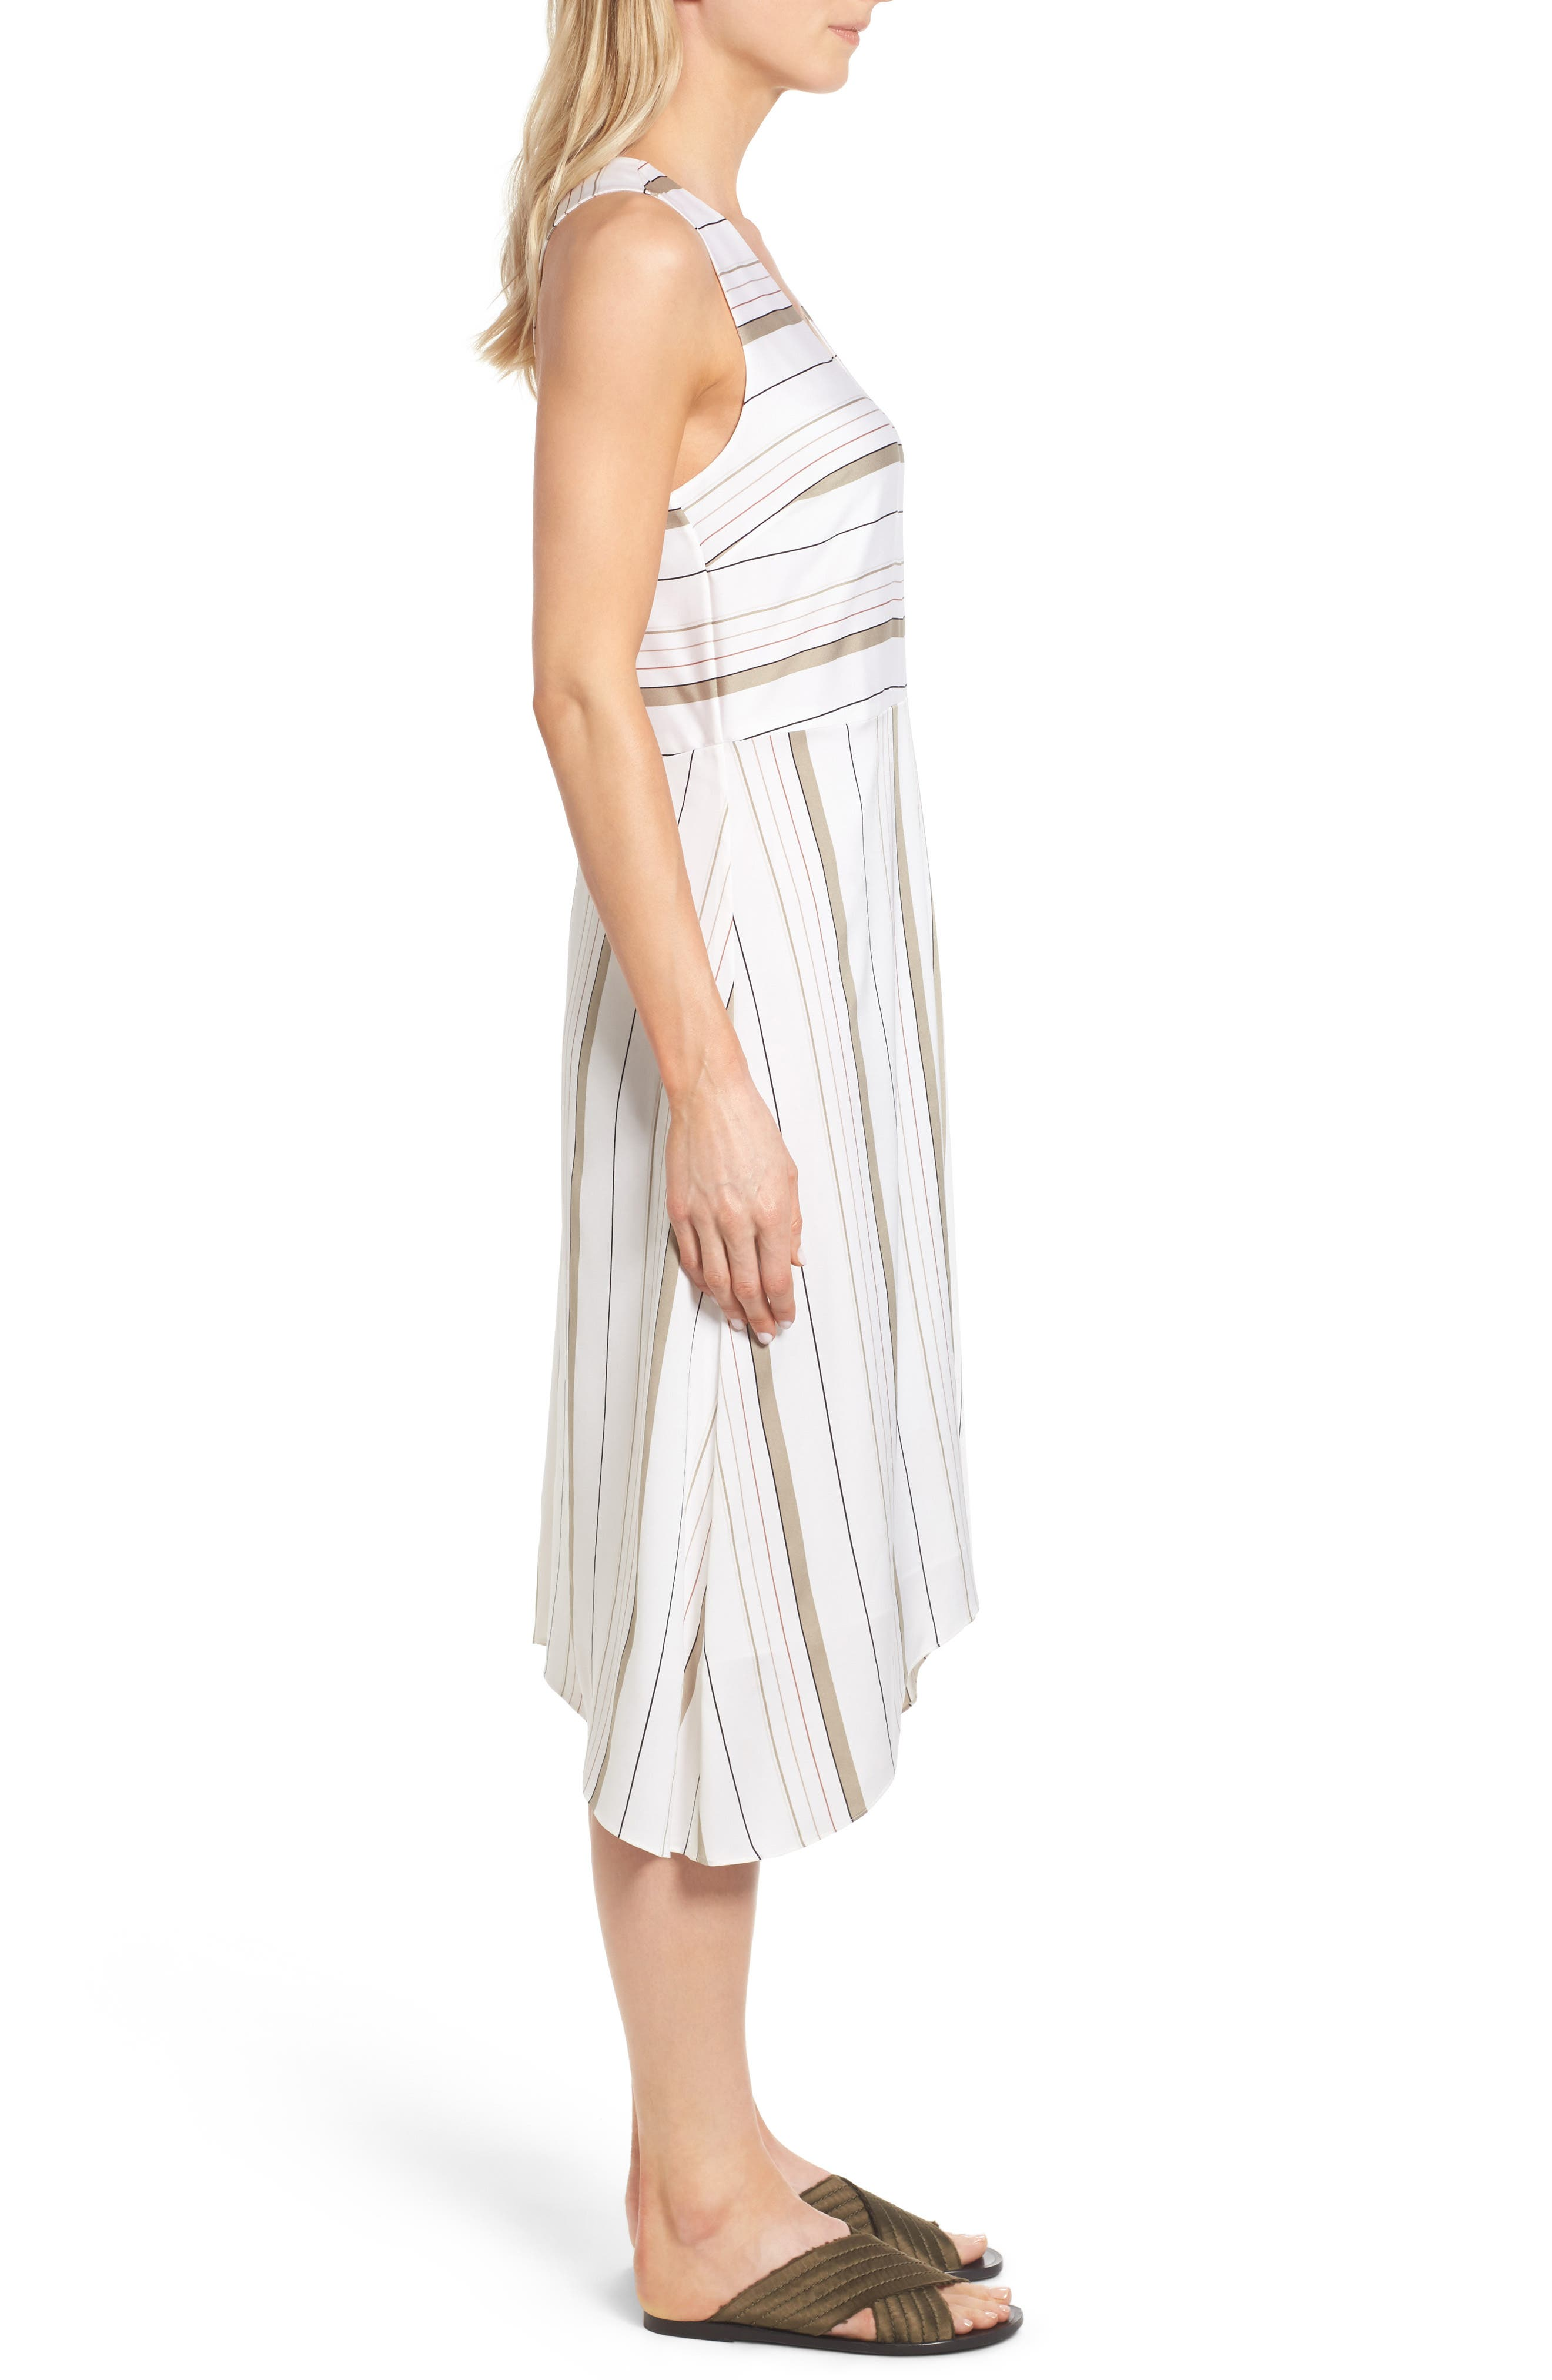 NORDSTROM COLLECTION, Stripe Stretch Silk Dress, Alternate thumbnail 3, color, 900